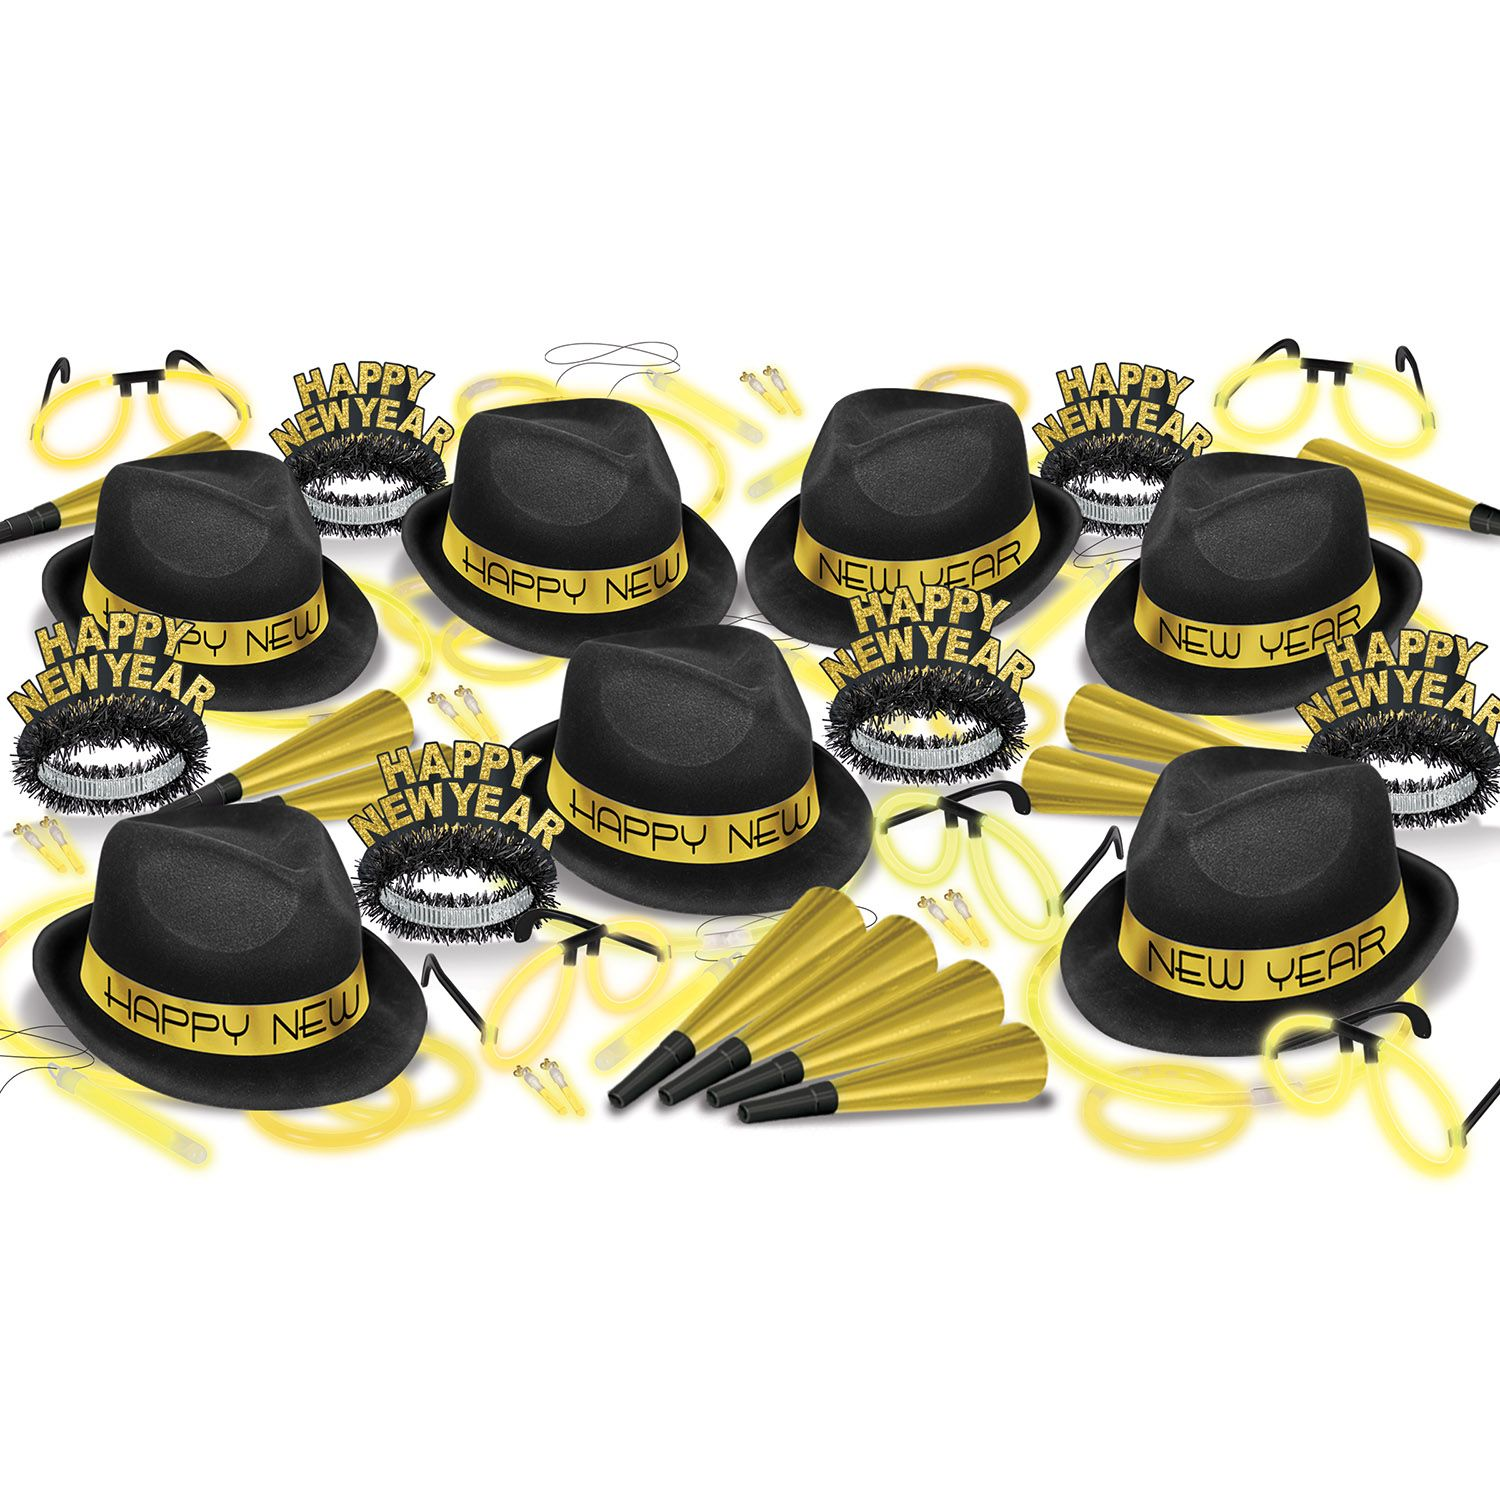 Wholesale New Year's Eve Party Kits & Packs